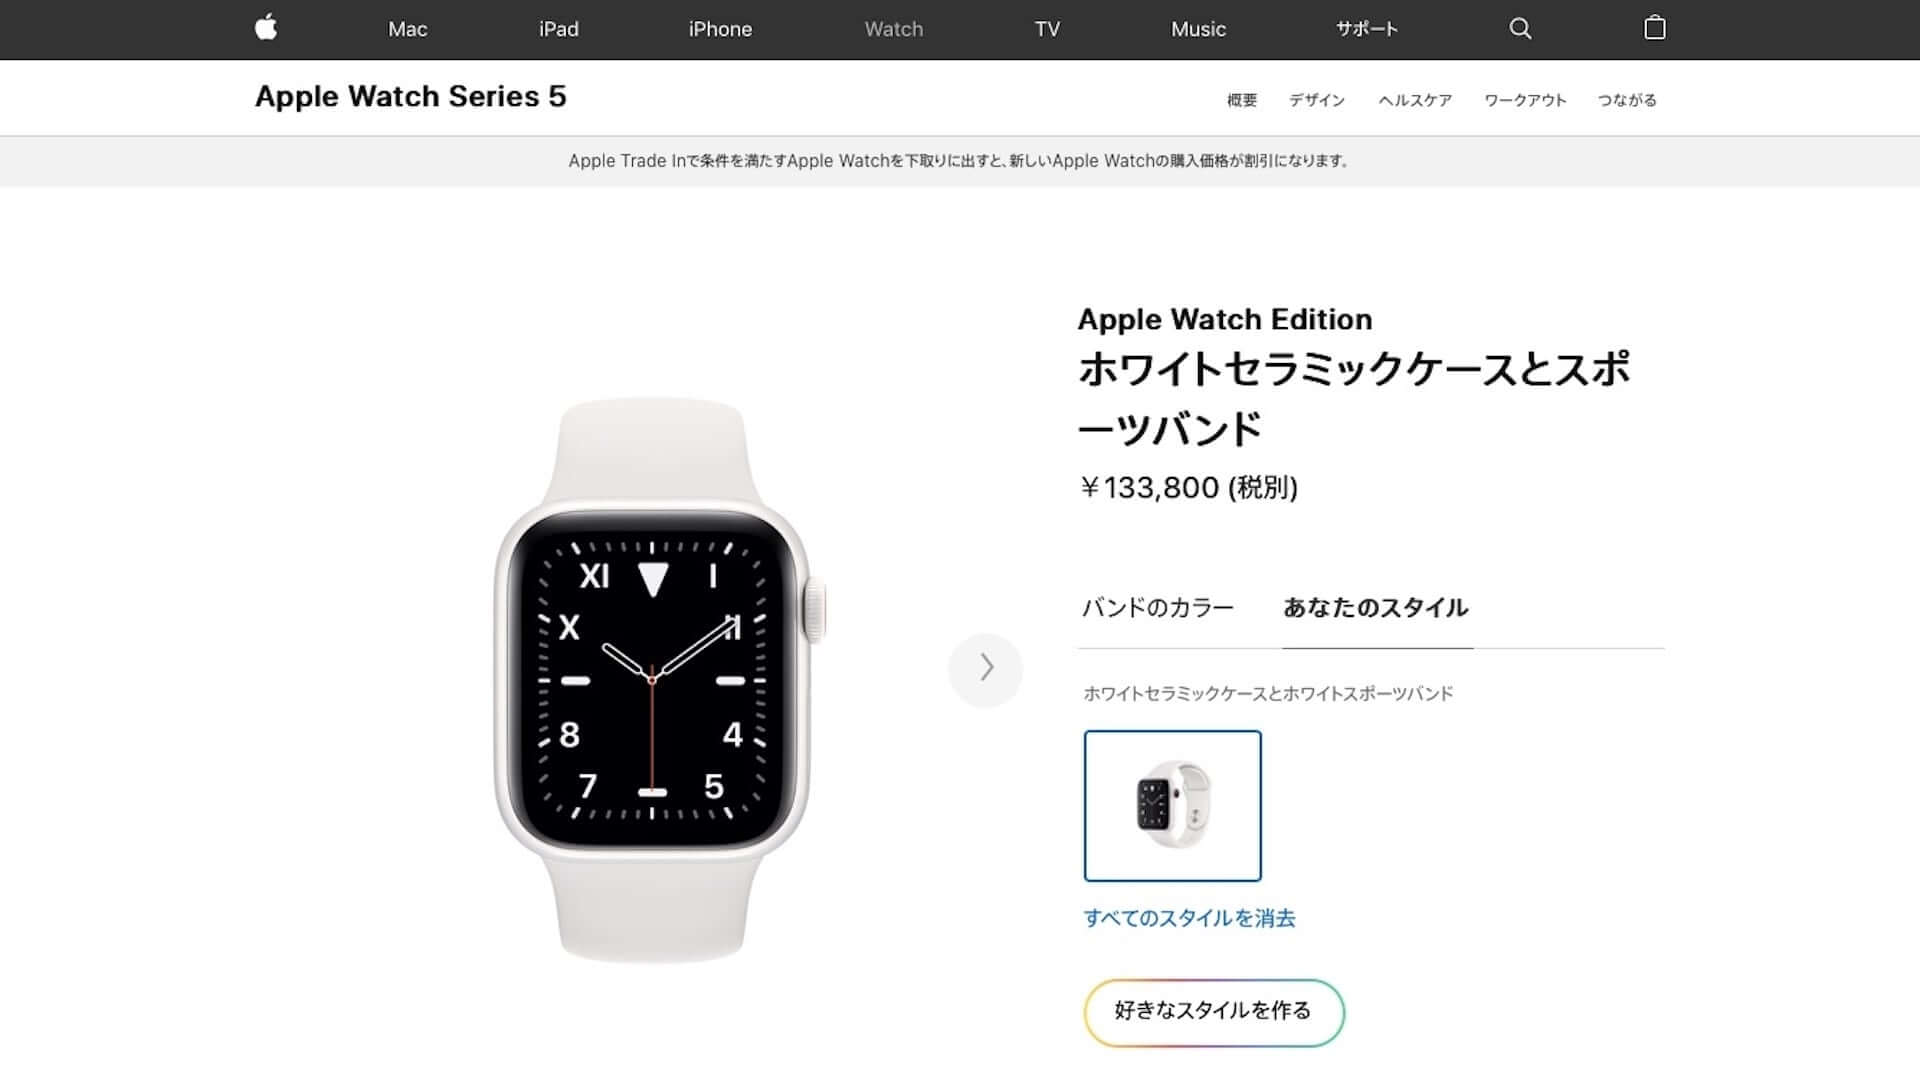 あなた好みのApple Watchを探そう!Apple Watch Studioが開設 tech190911_applewatch_studio_6-1920x1068